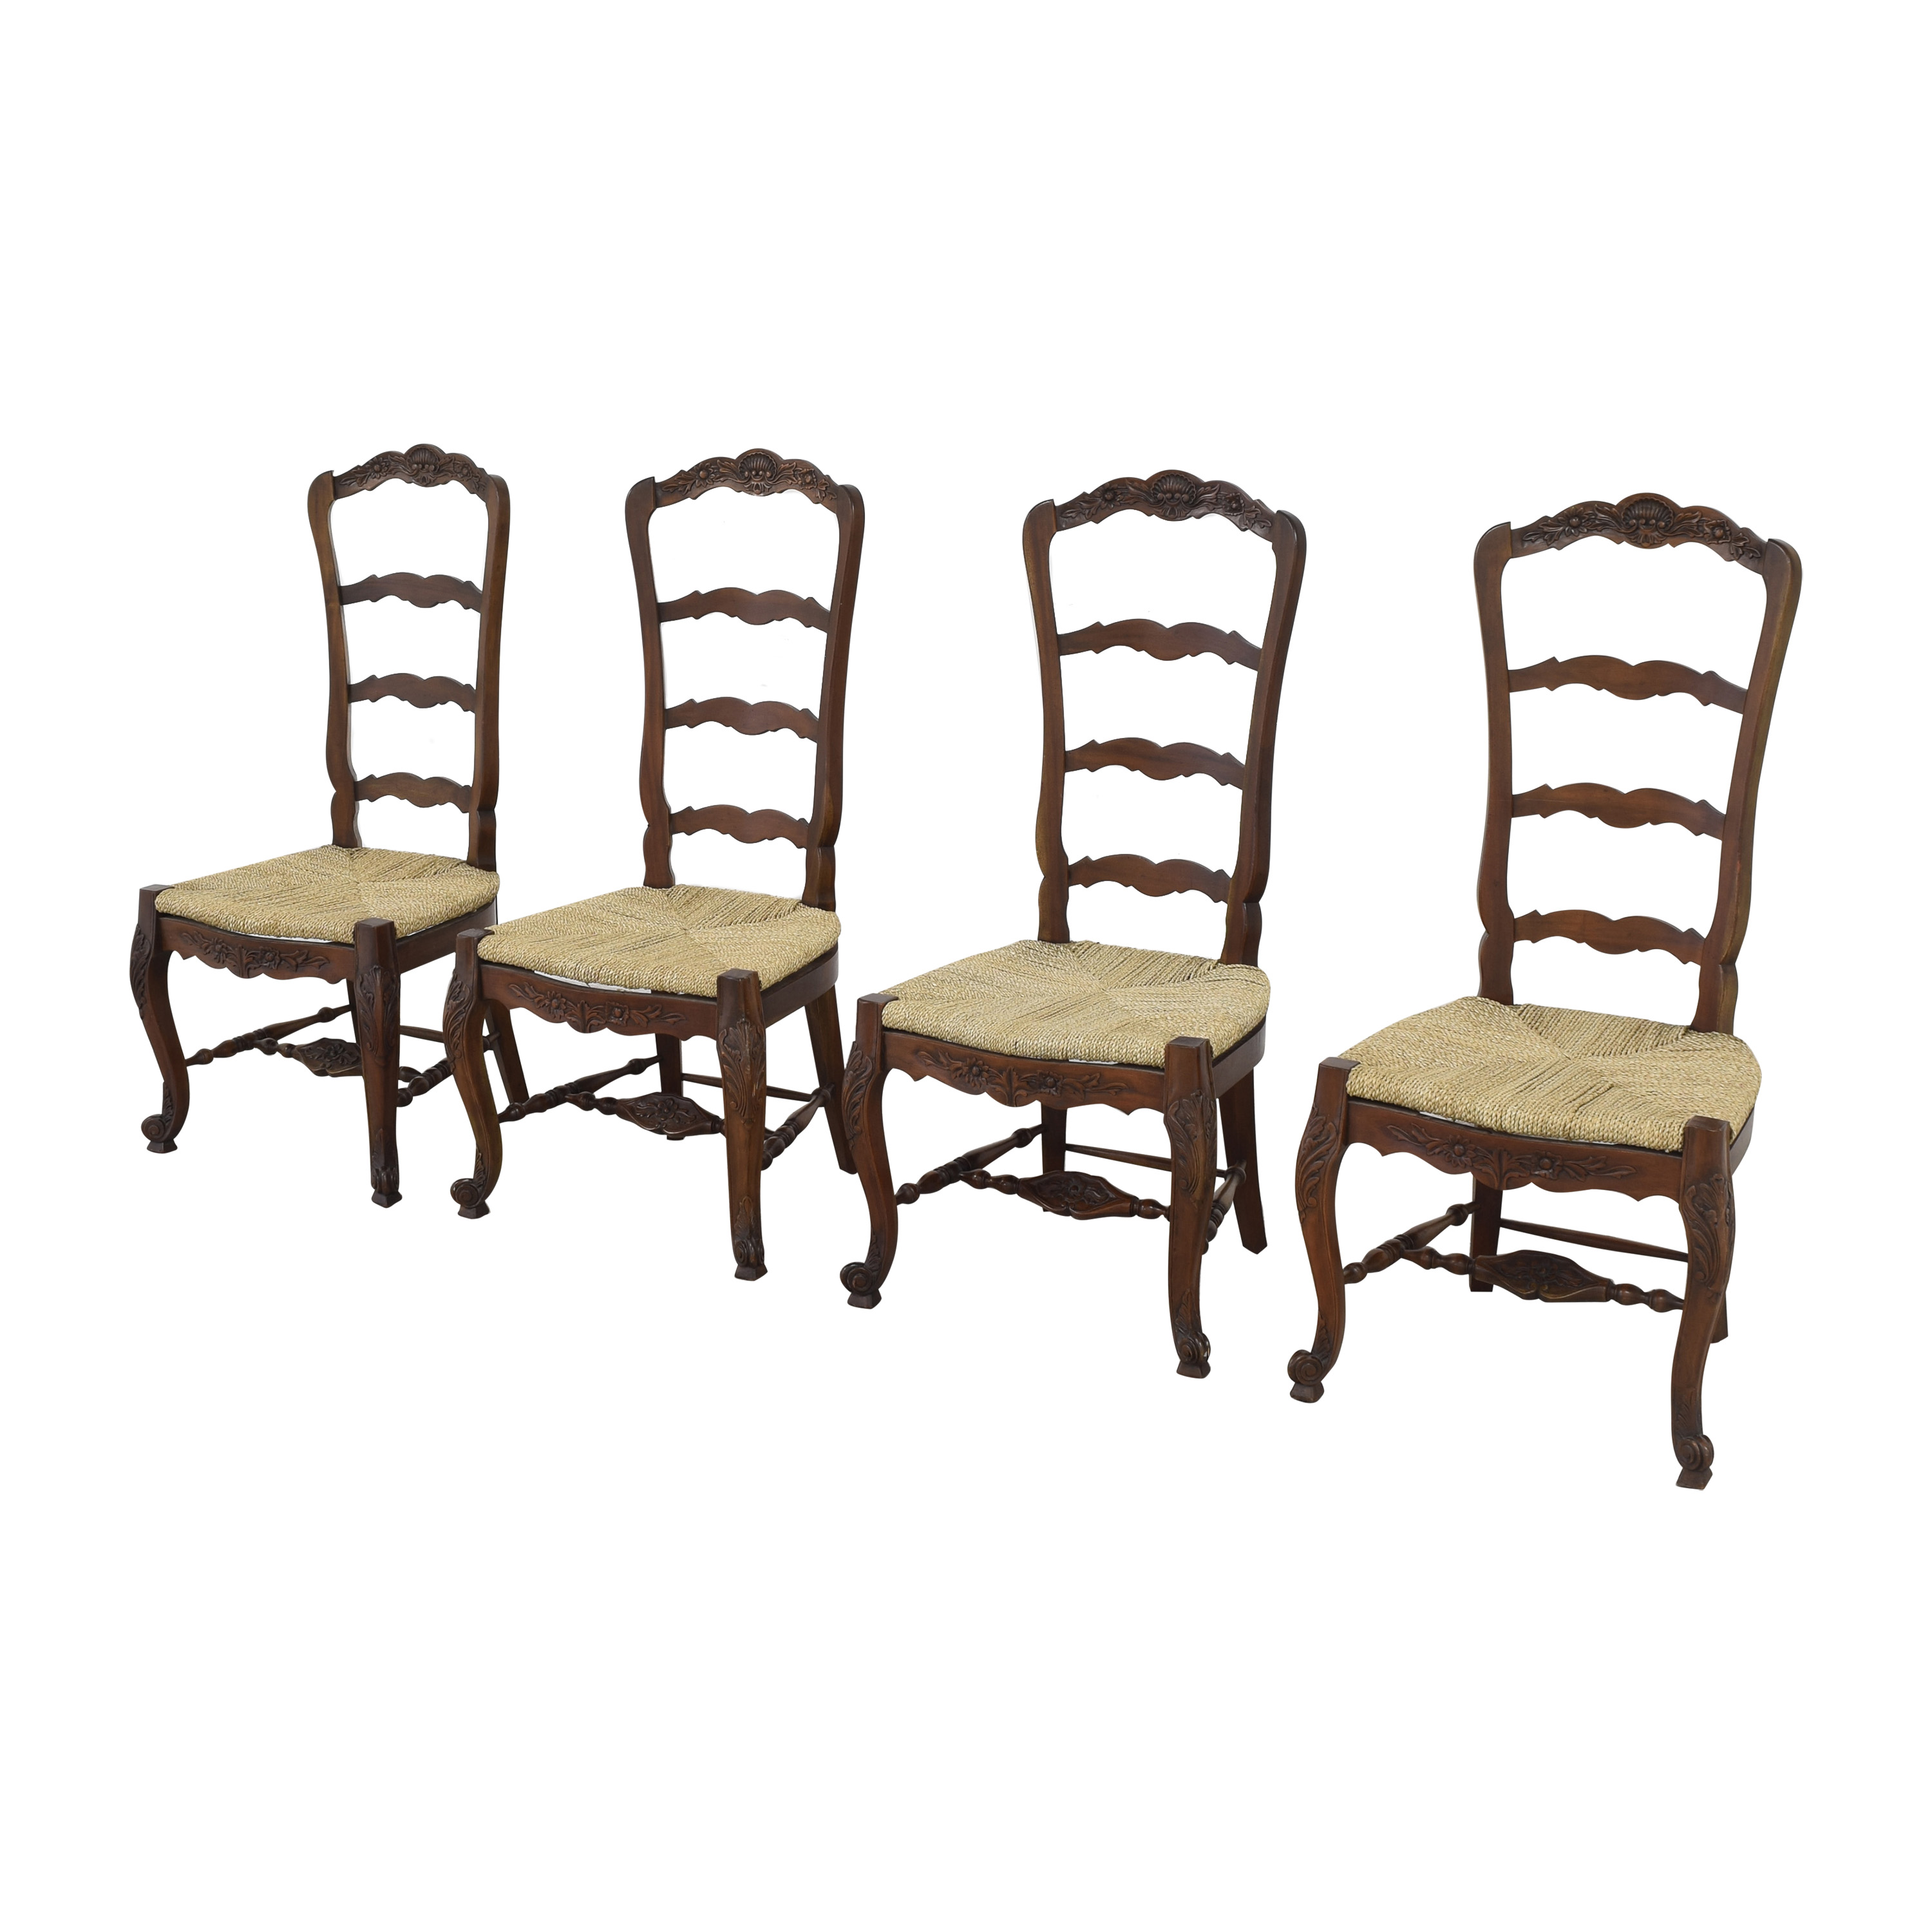 Marie Albert Marie Albert French Country Ladder Back Dining Chairs